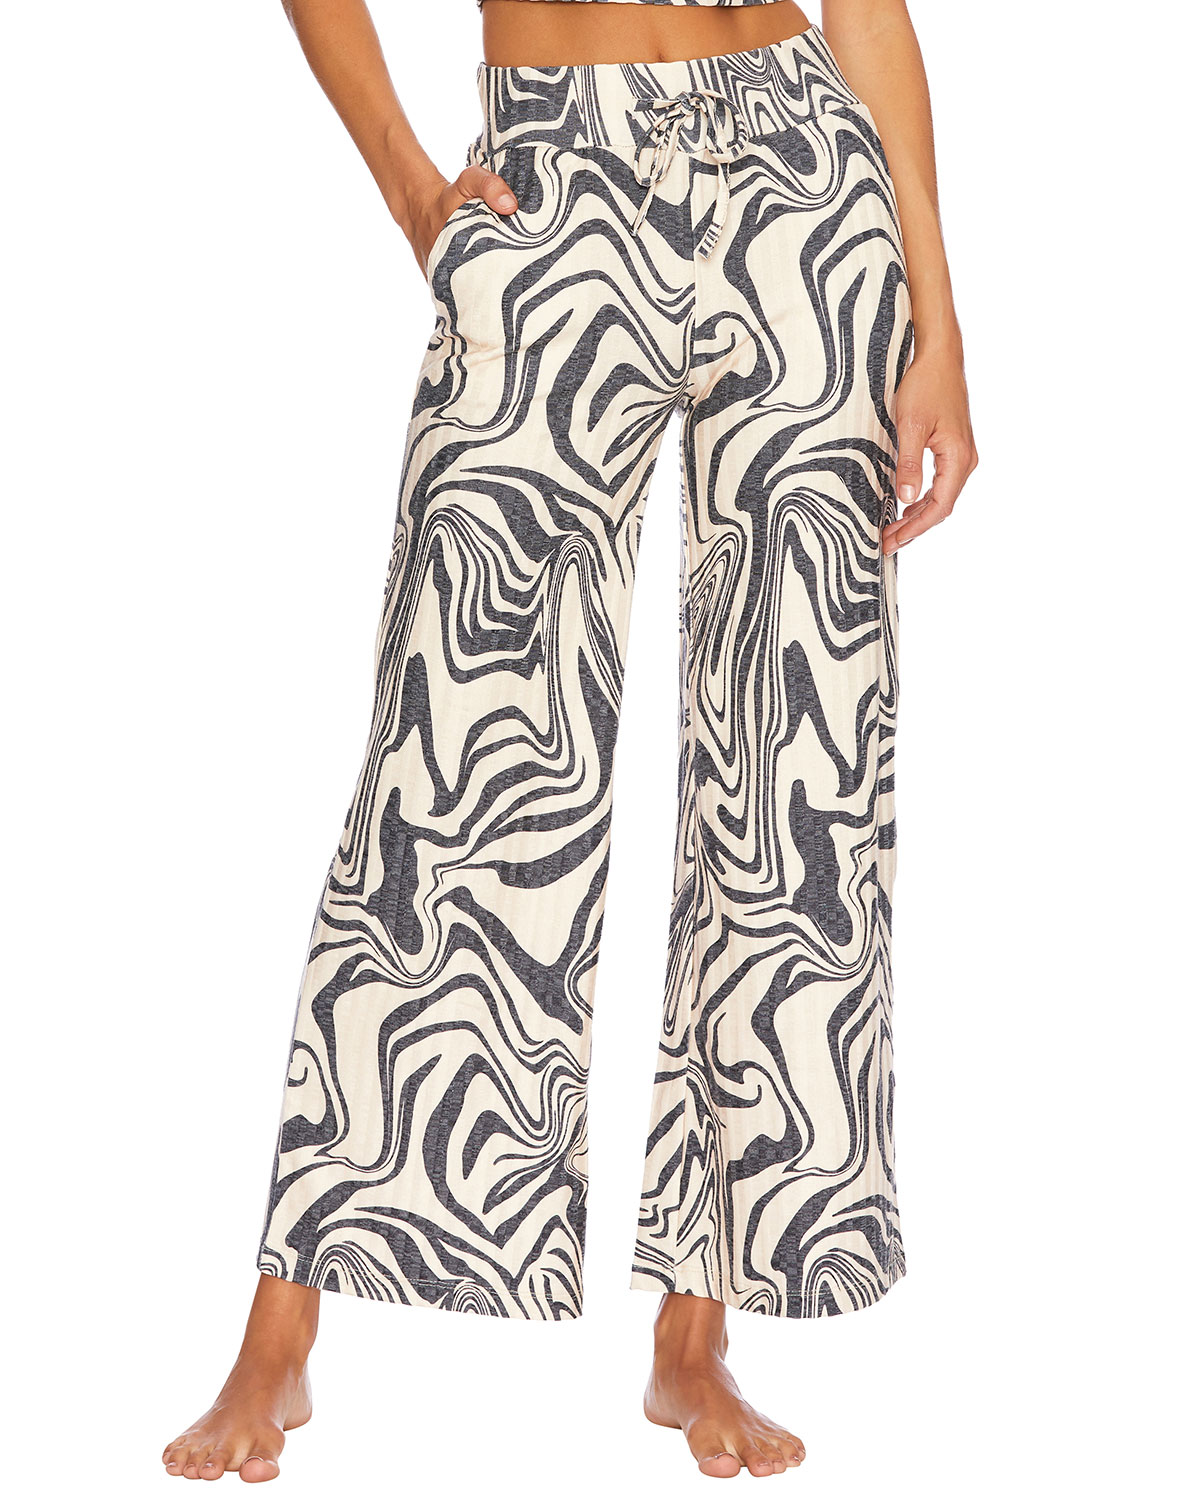 Beach Riot RIOT PSYCHEDELIC SWIRL PANTS